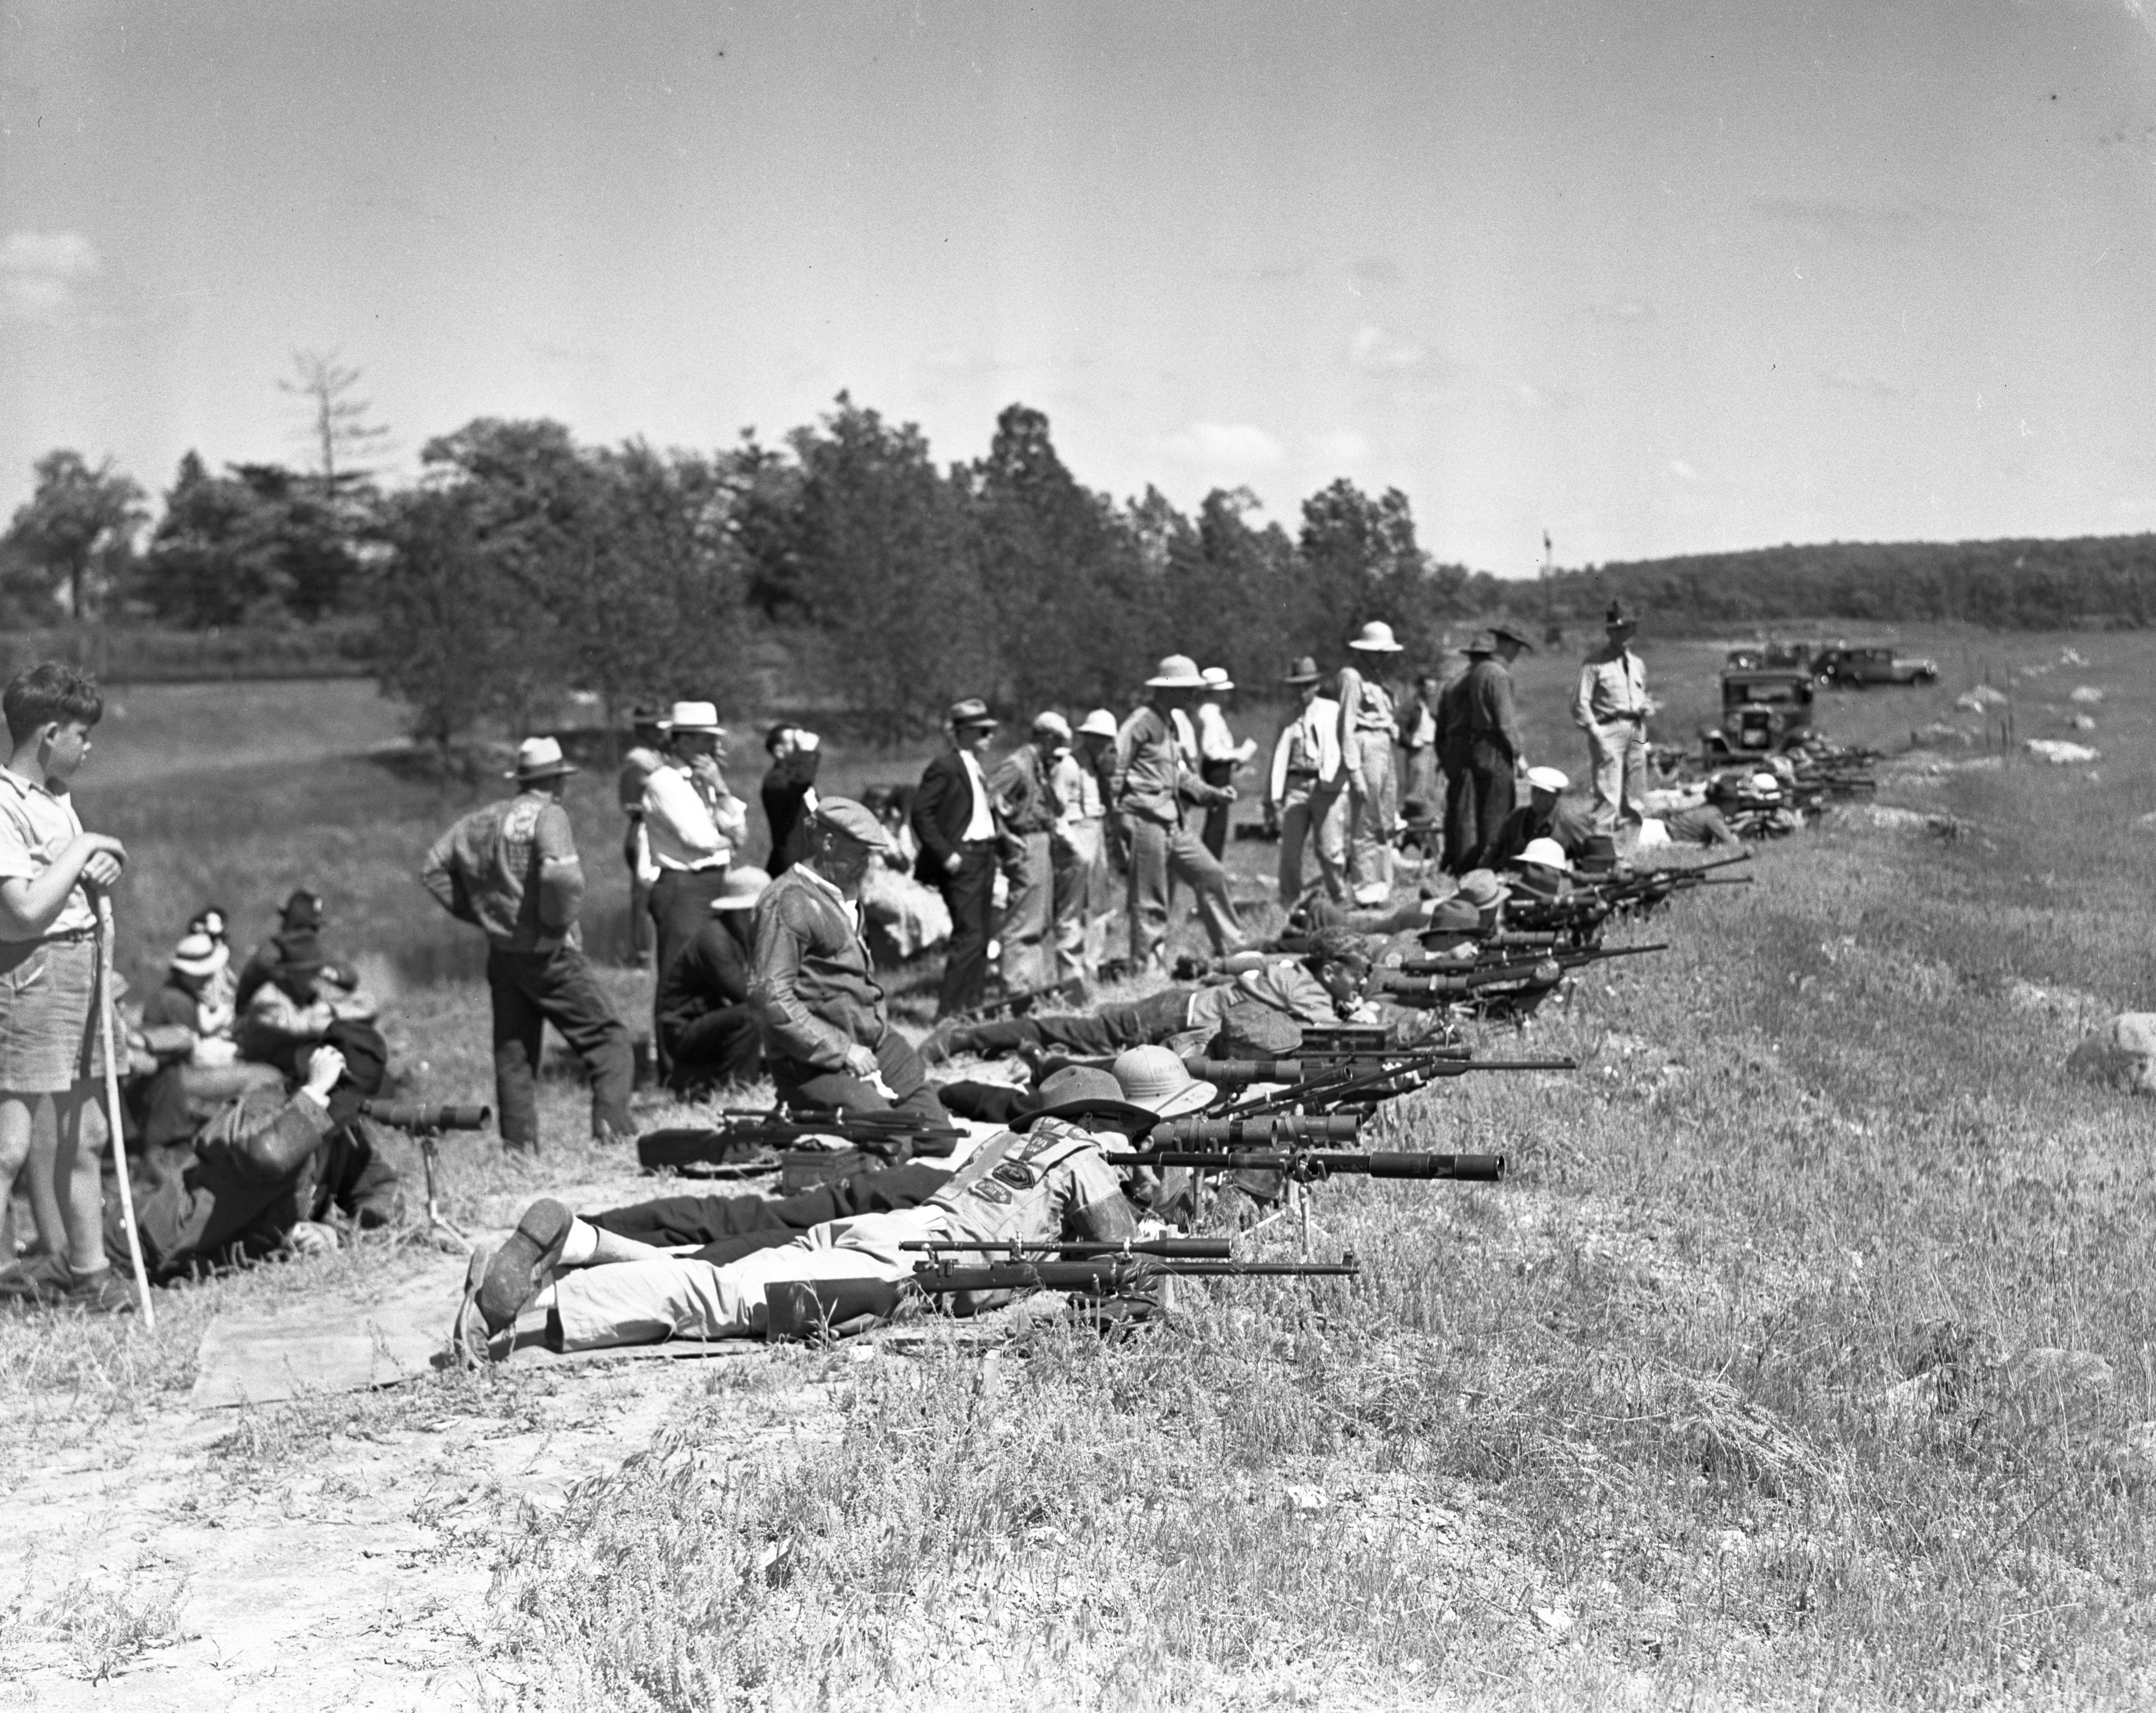 Rifle Shoot at Osborne's Pit, June 6, 1937 image